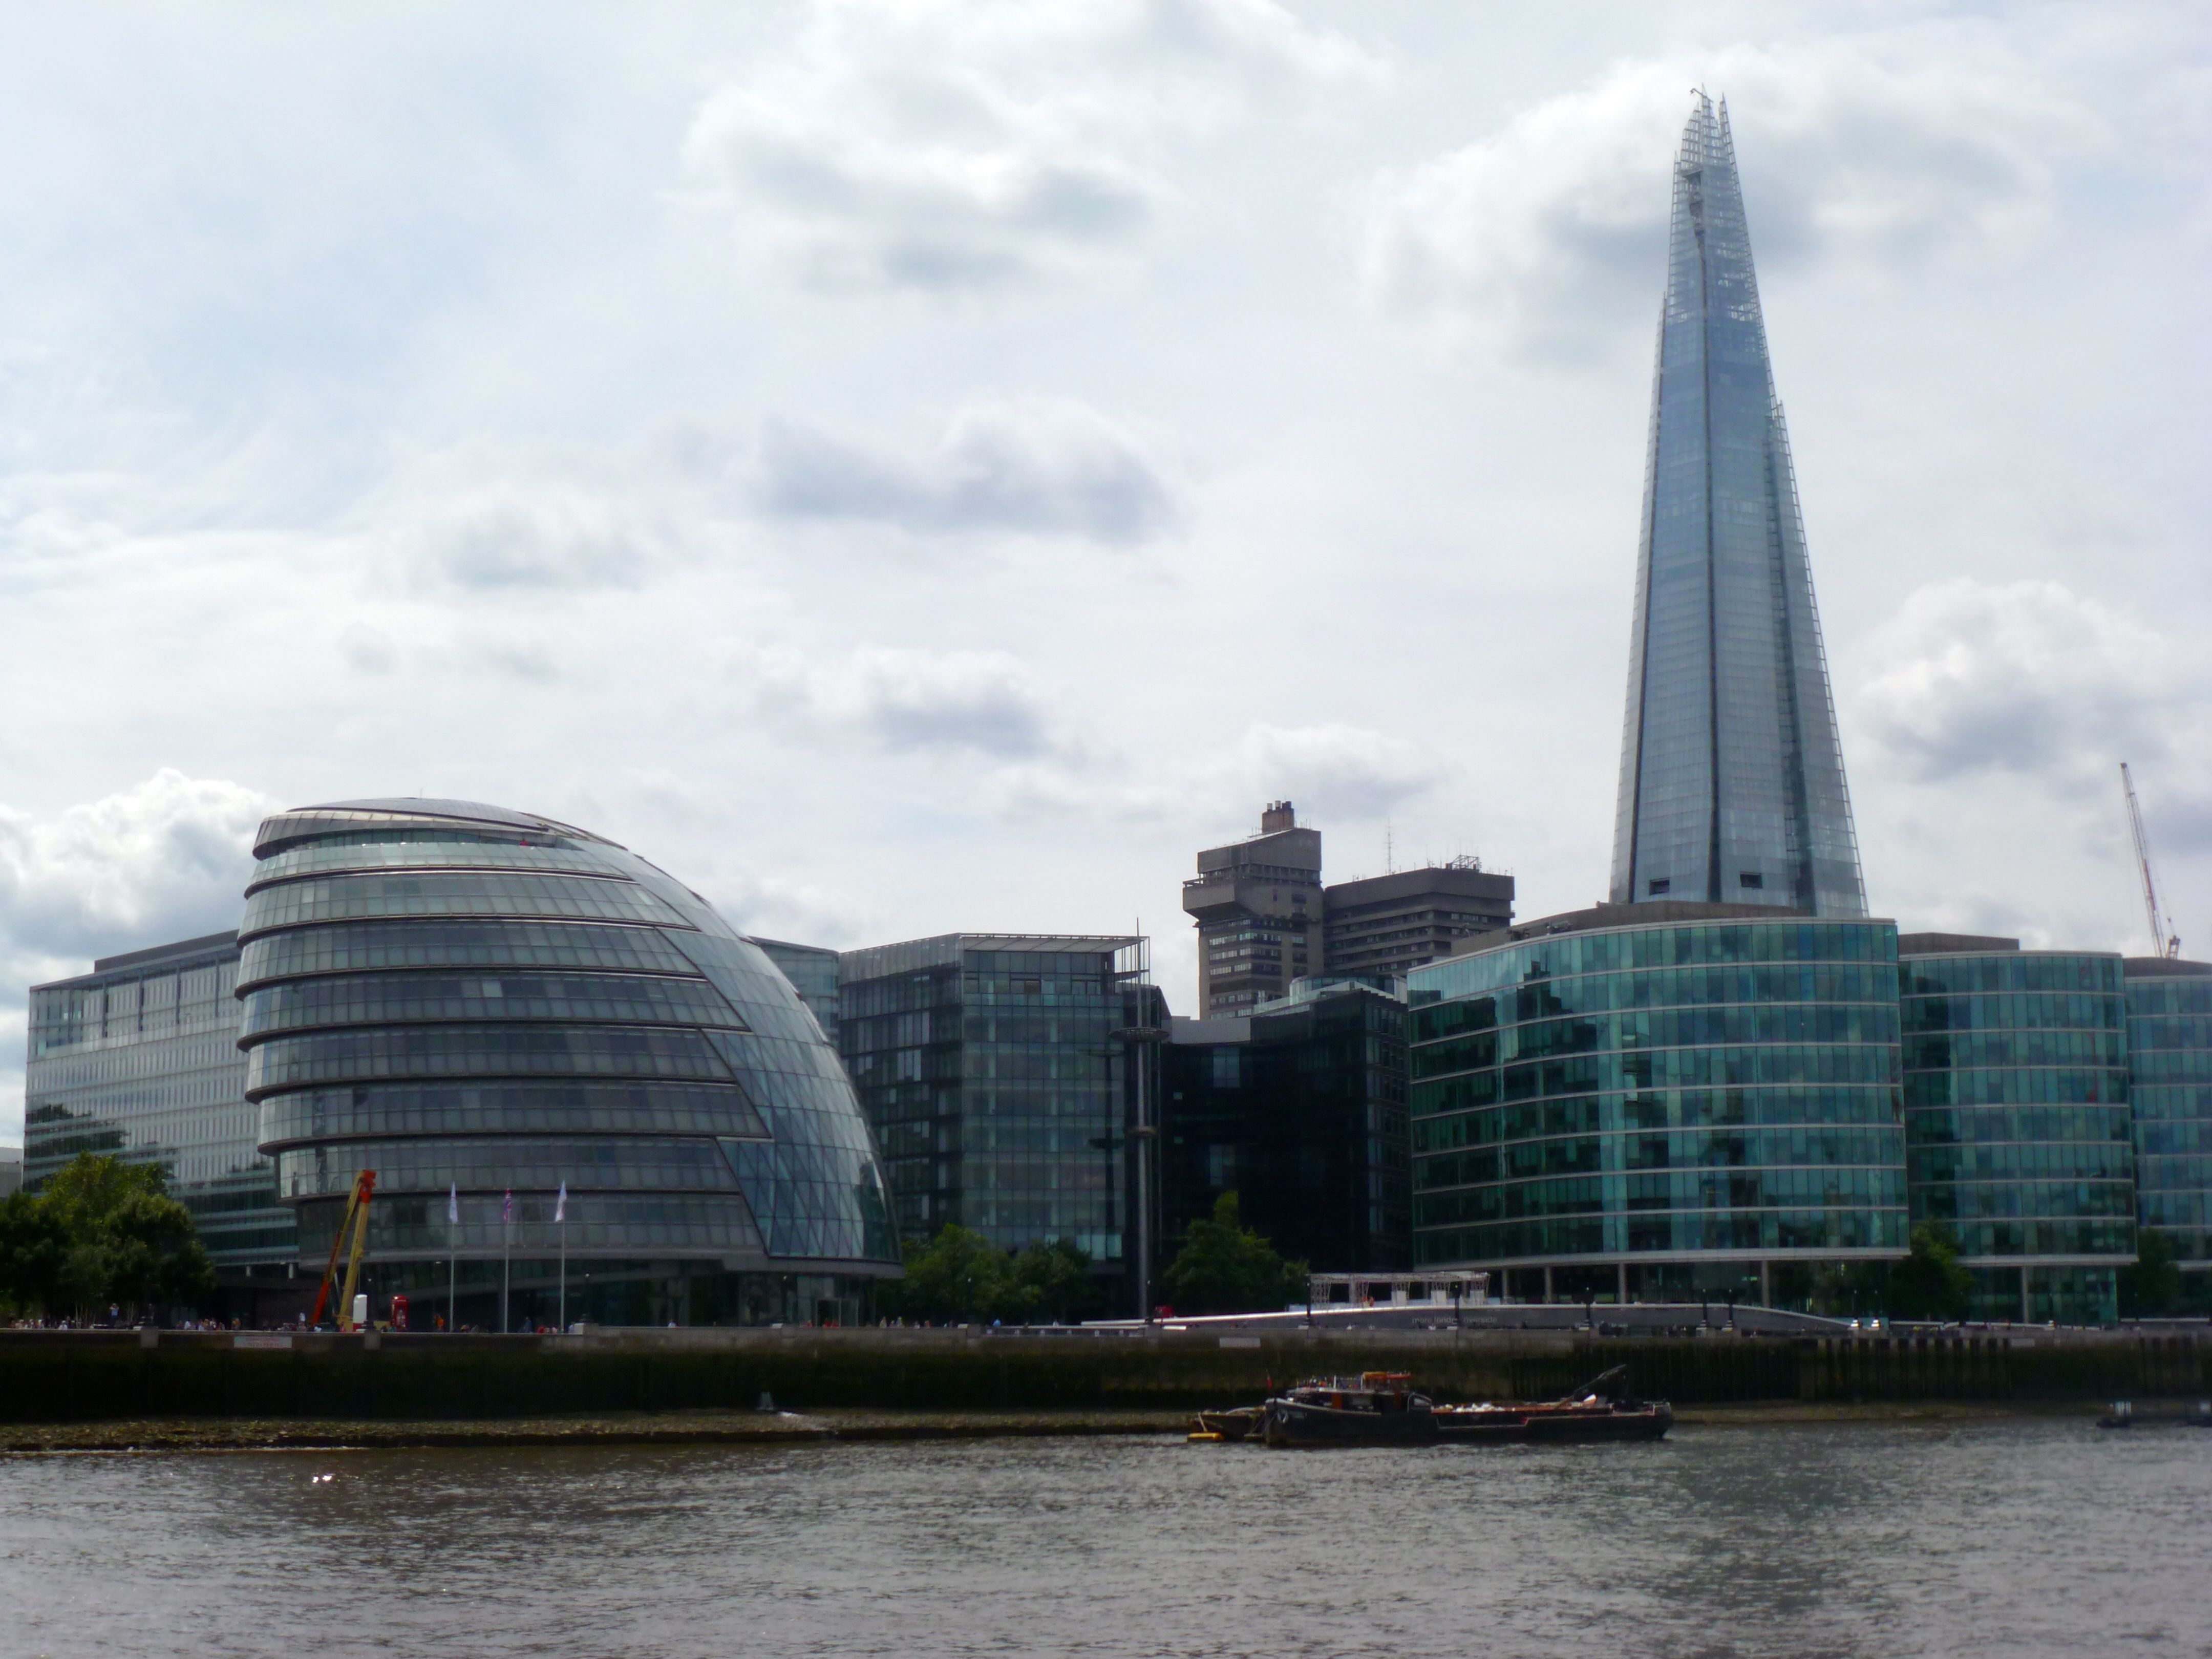 London waterfront with The Shard